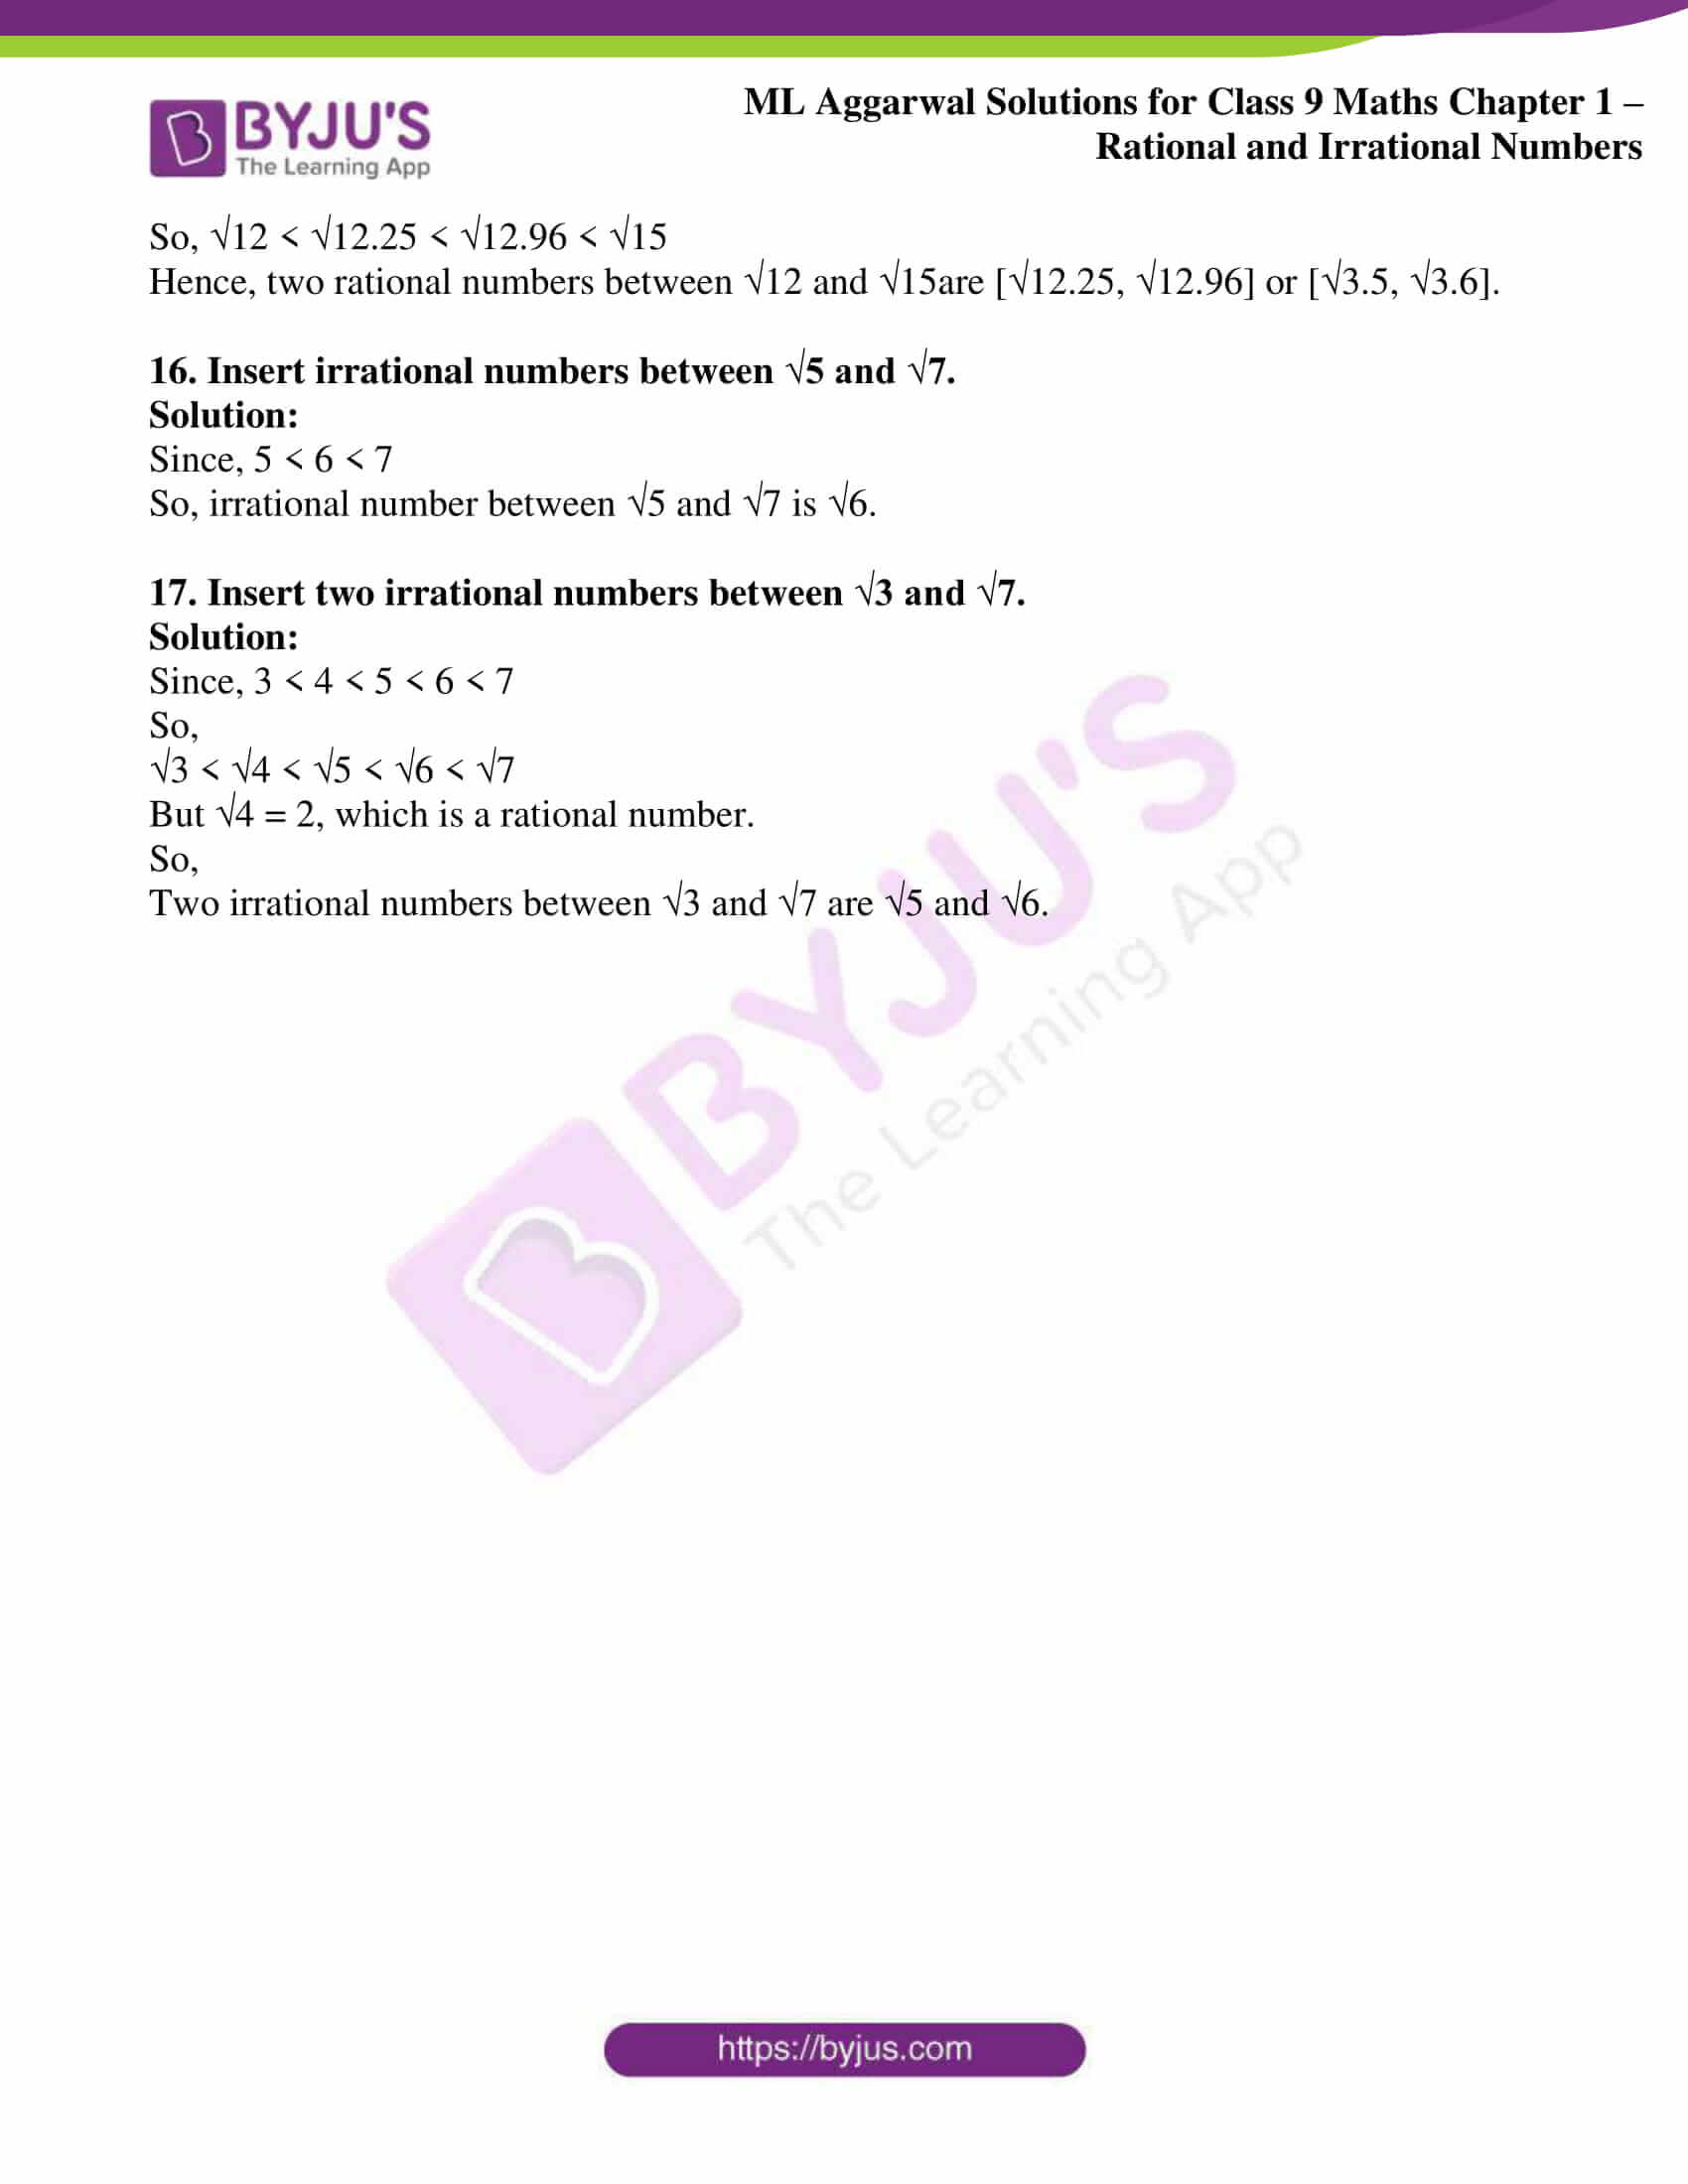 ml aggarwal solutions for class 9 maths chapter 1 36